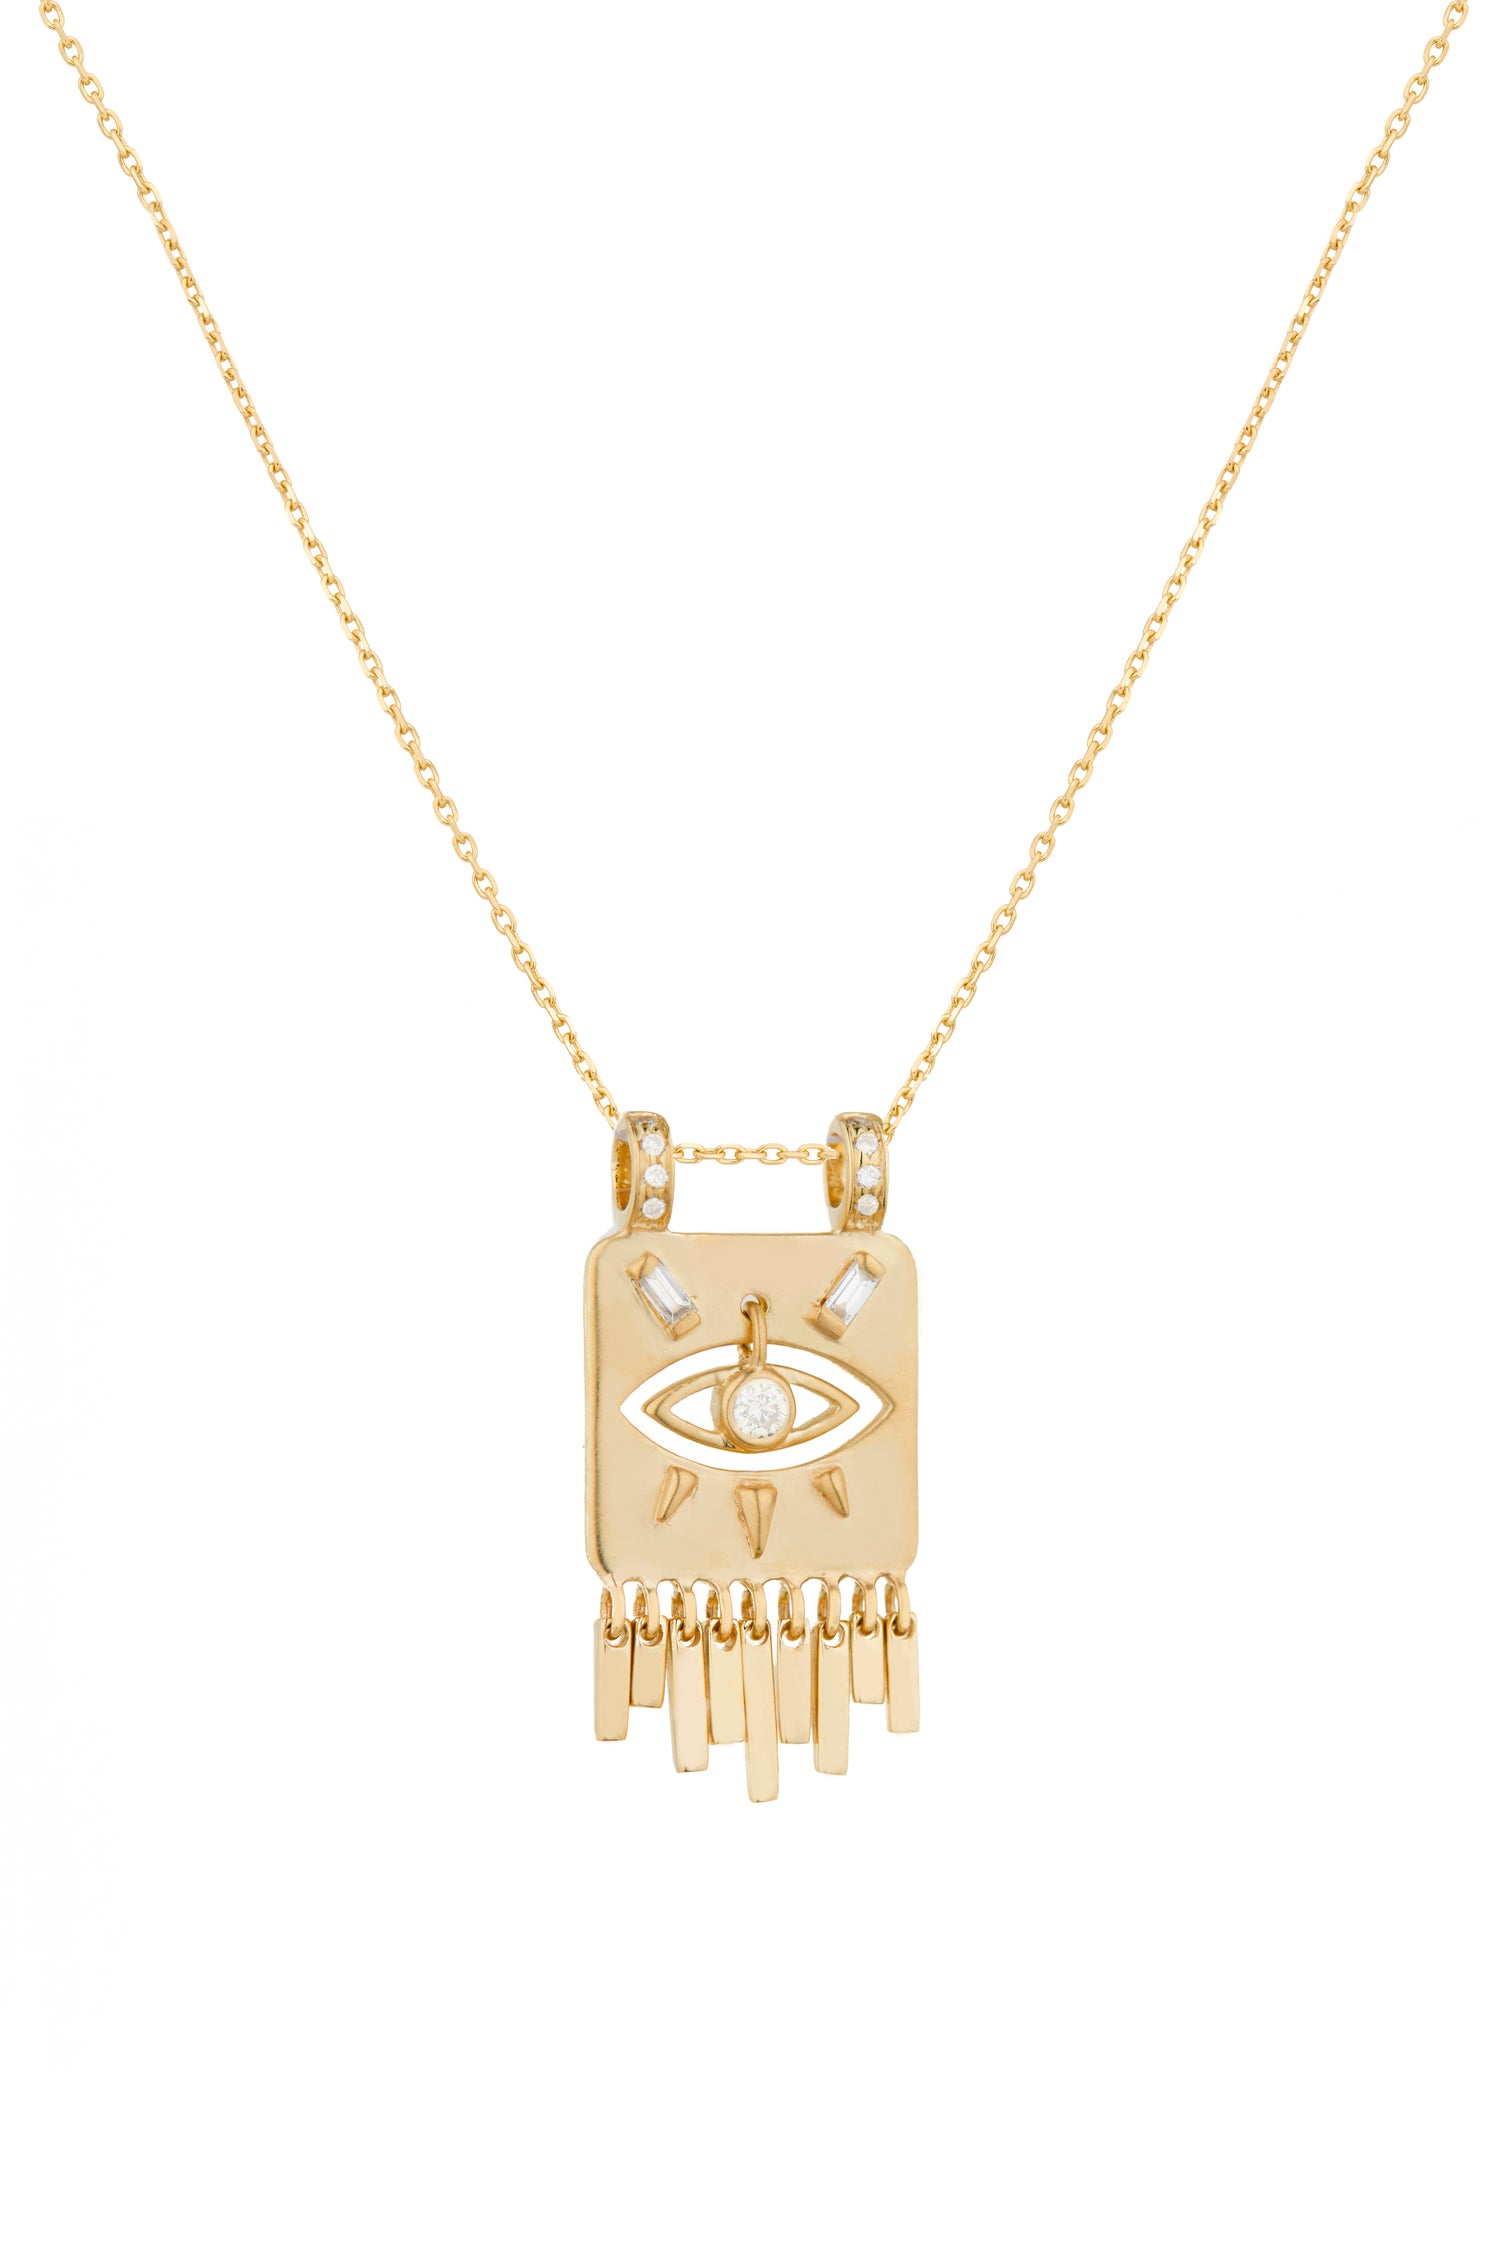 Image of COLLIER MINI TOTEM ŒIL & DIAMANTS.